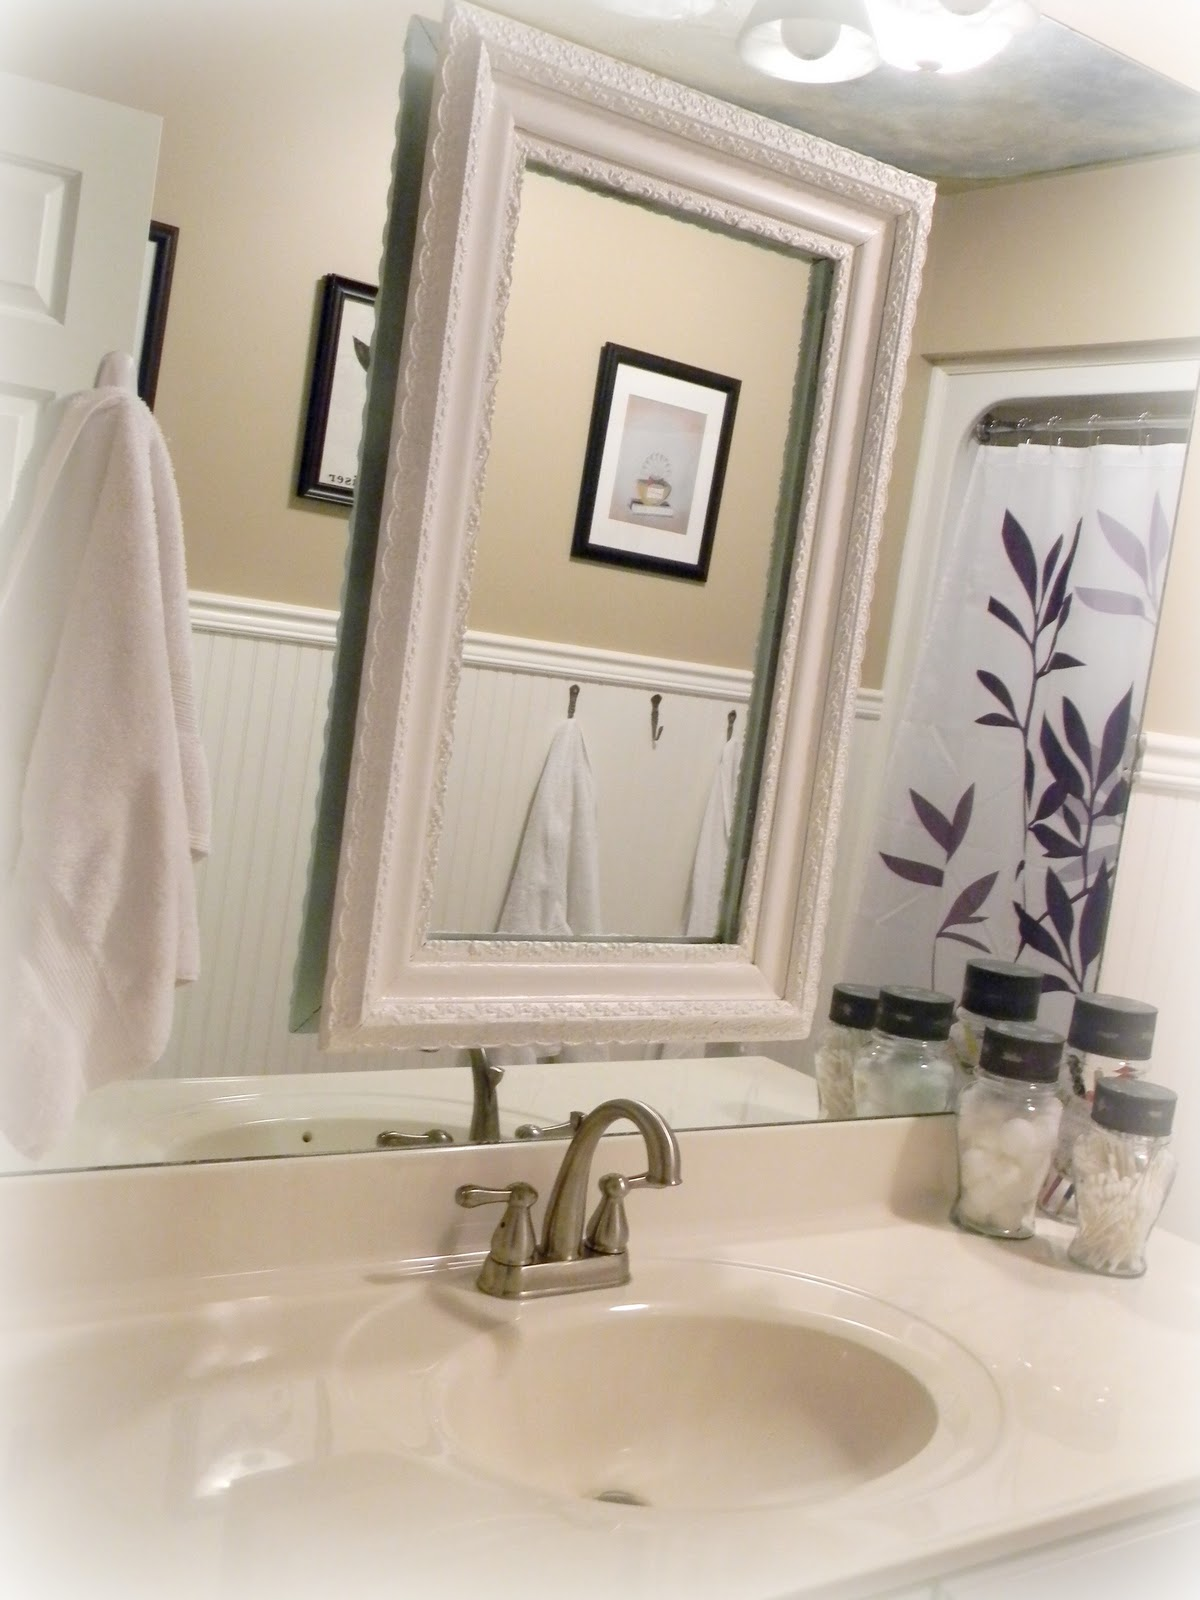 Forever decorating guest bathroom tour - How to decorate a guest bathroom ...